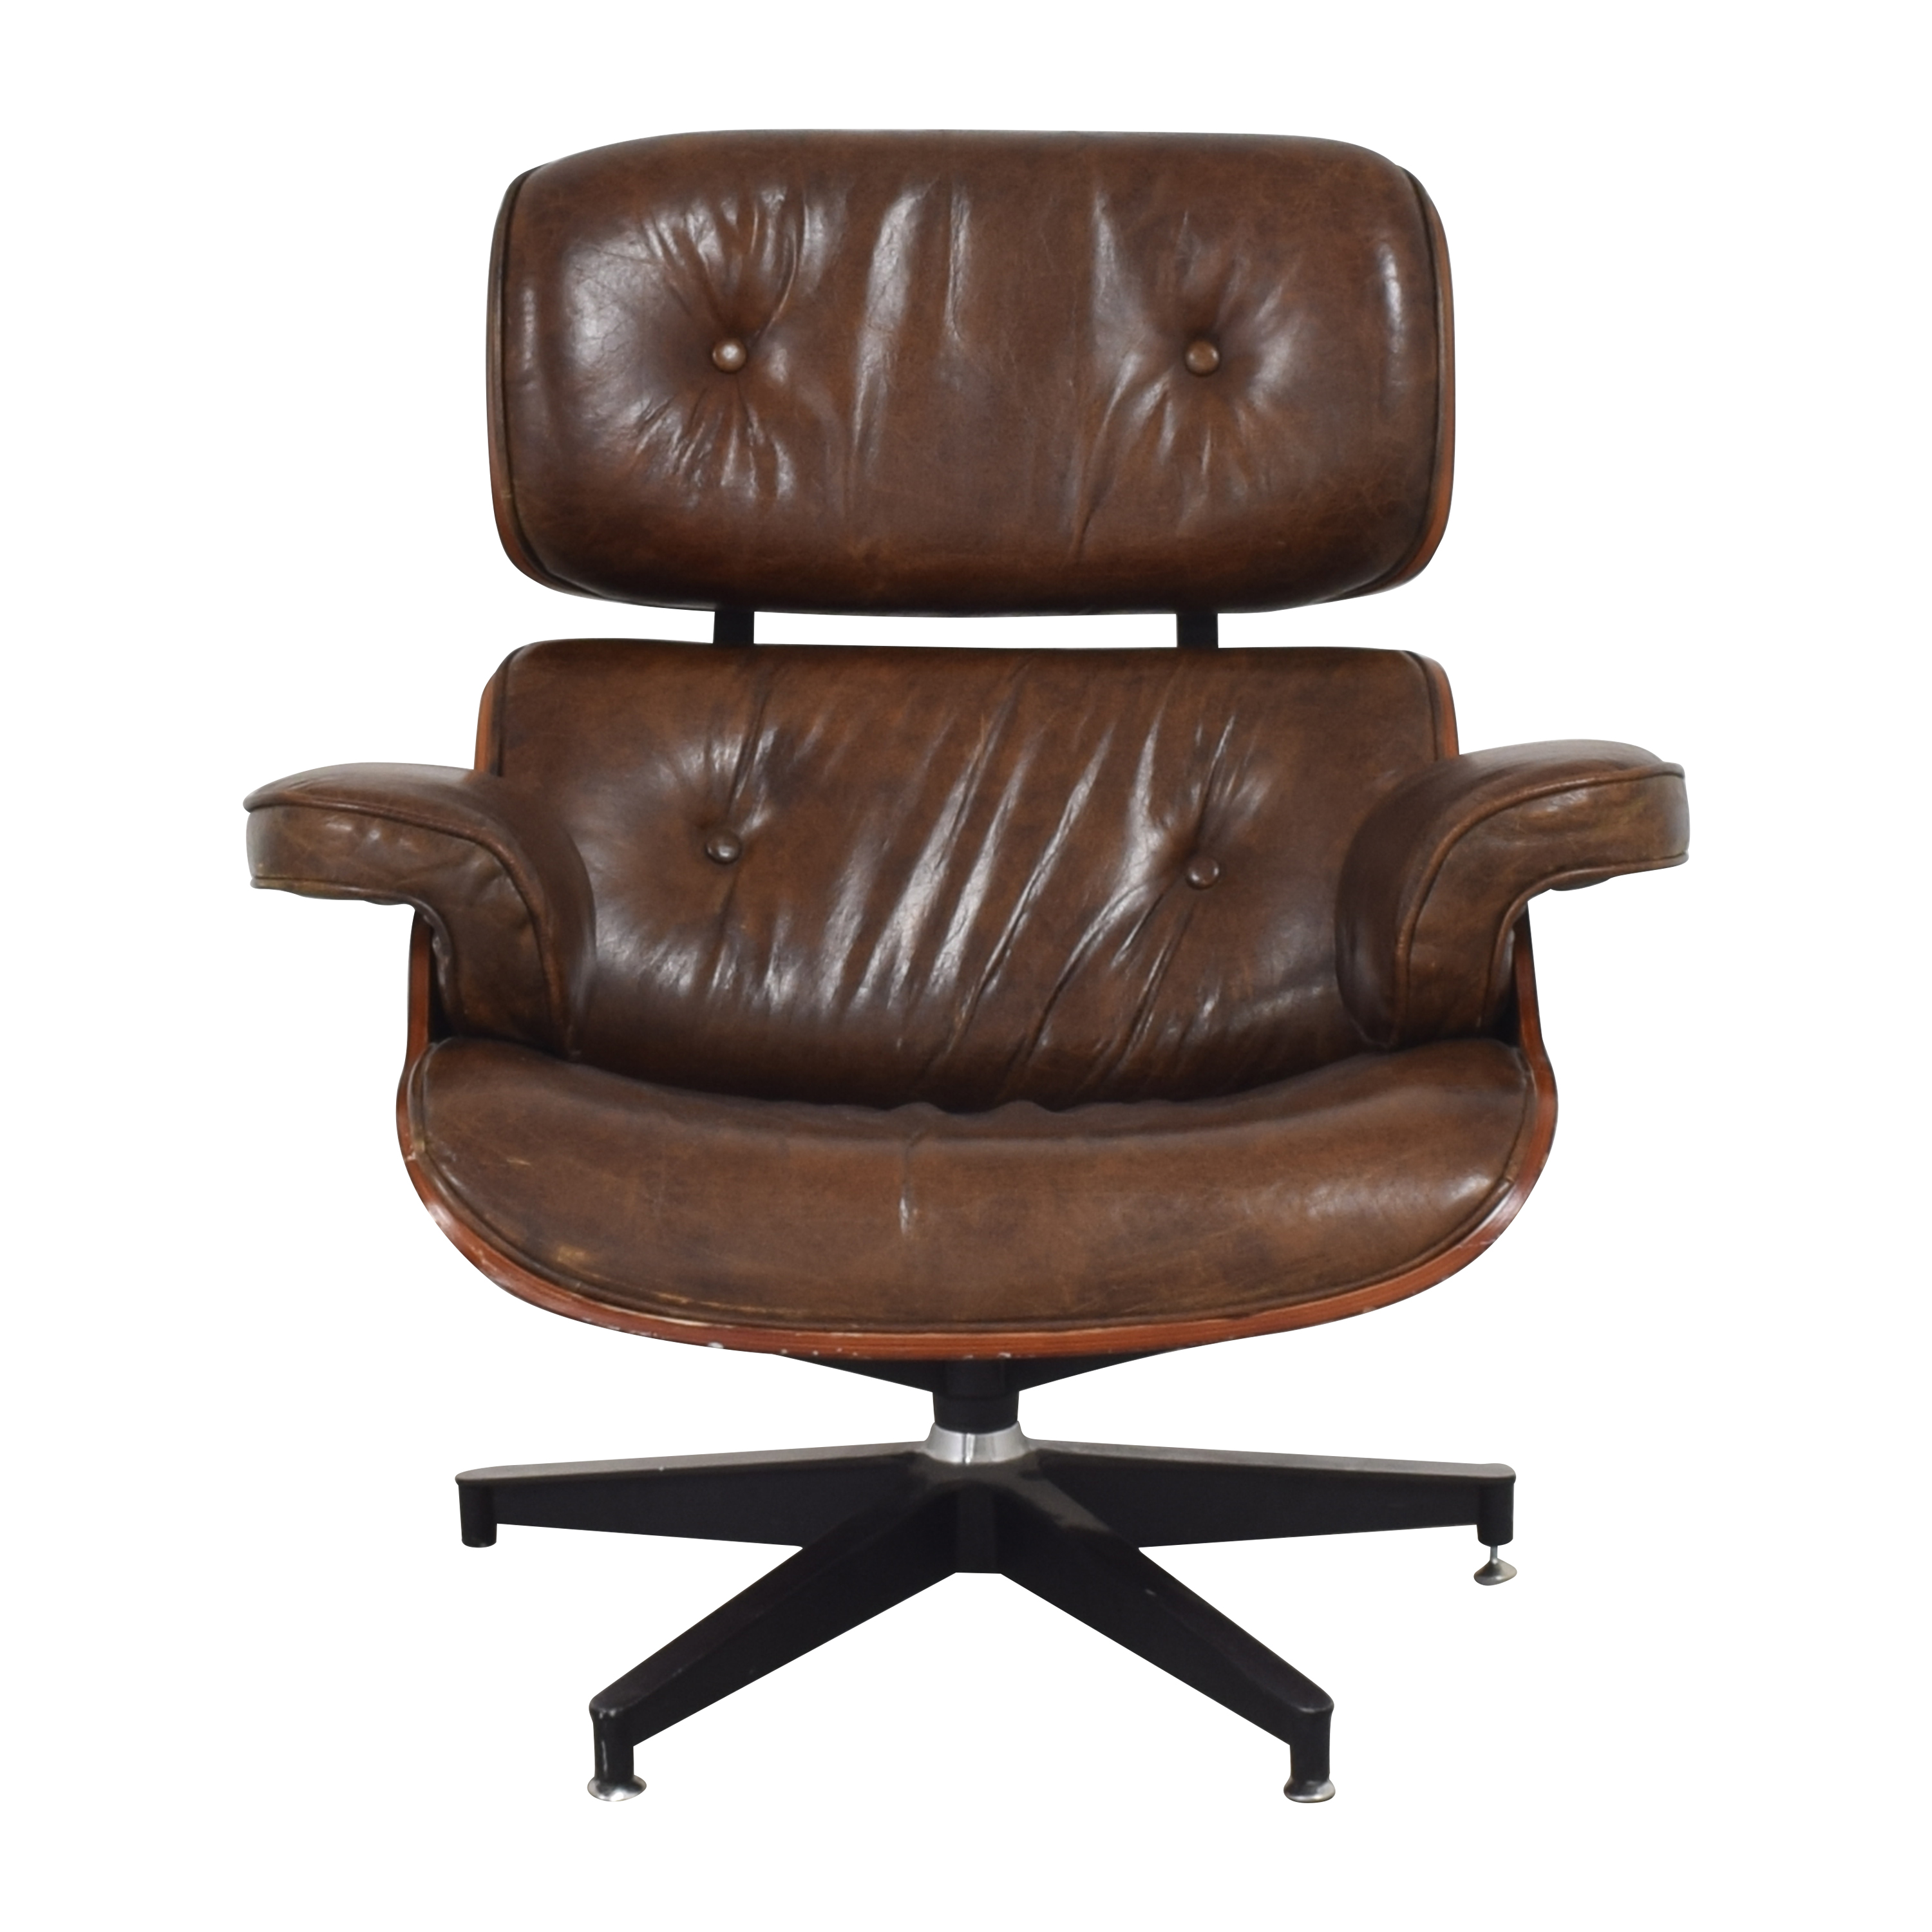 Eames-Style Chair with Ottoman on sale